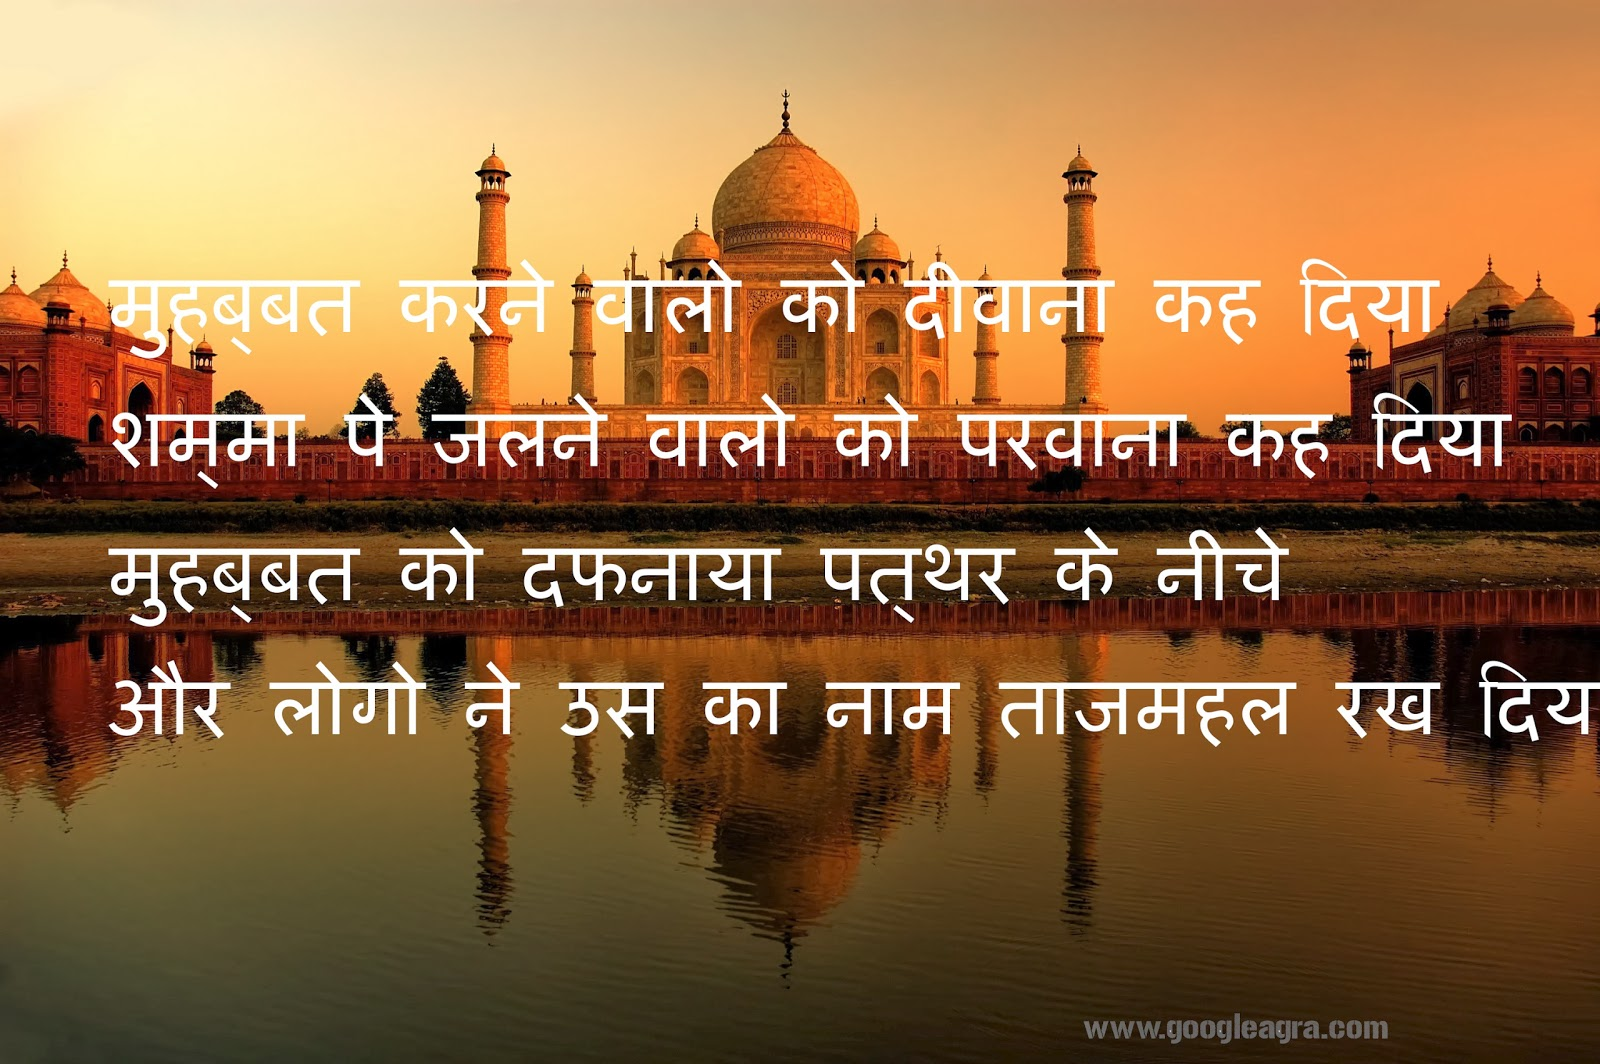 Tajmahal shayari in hindi - Google Agra